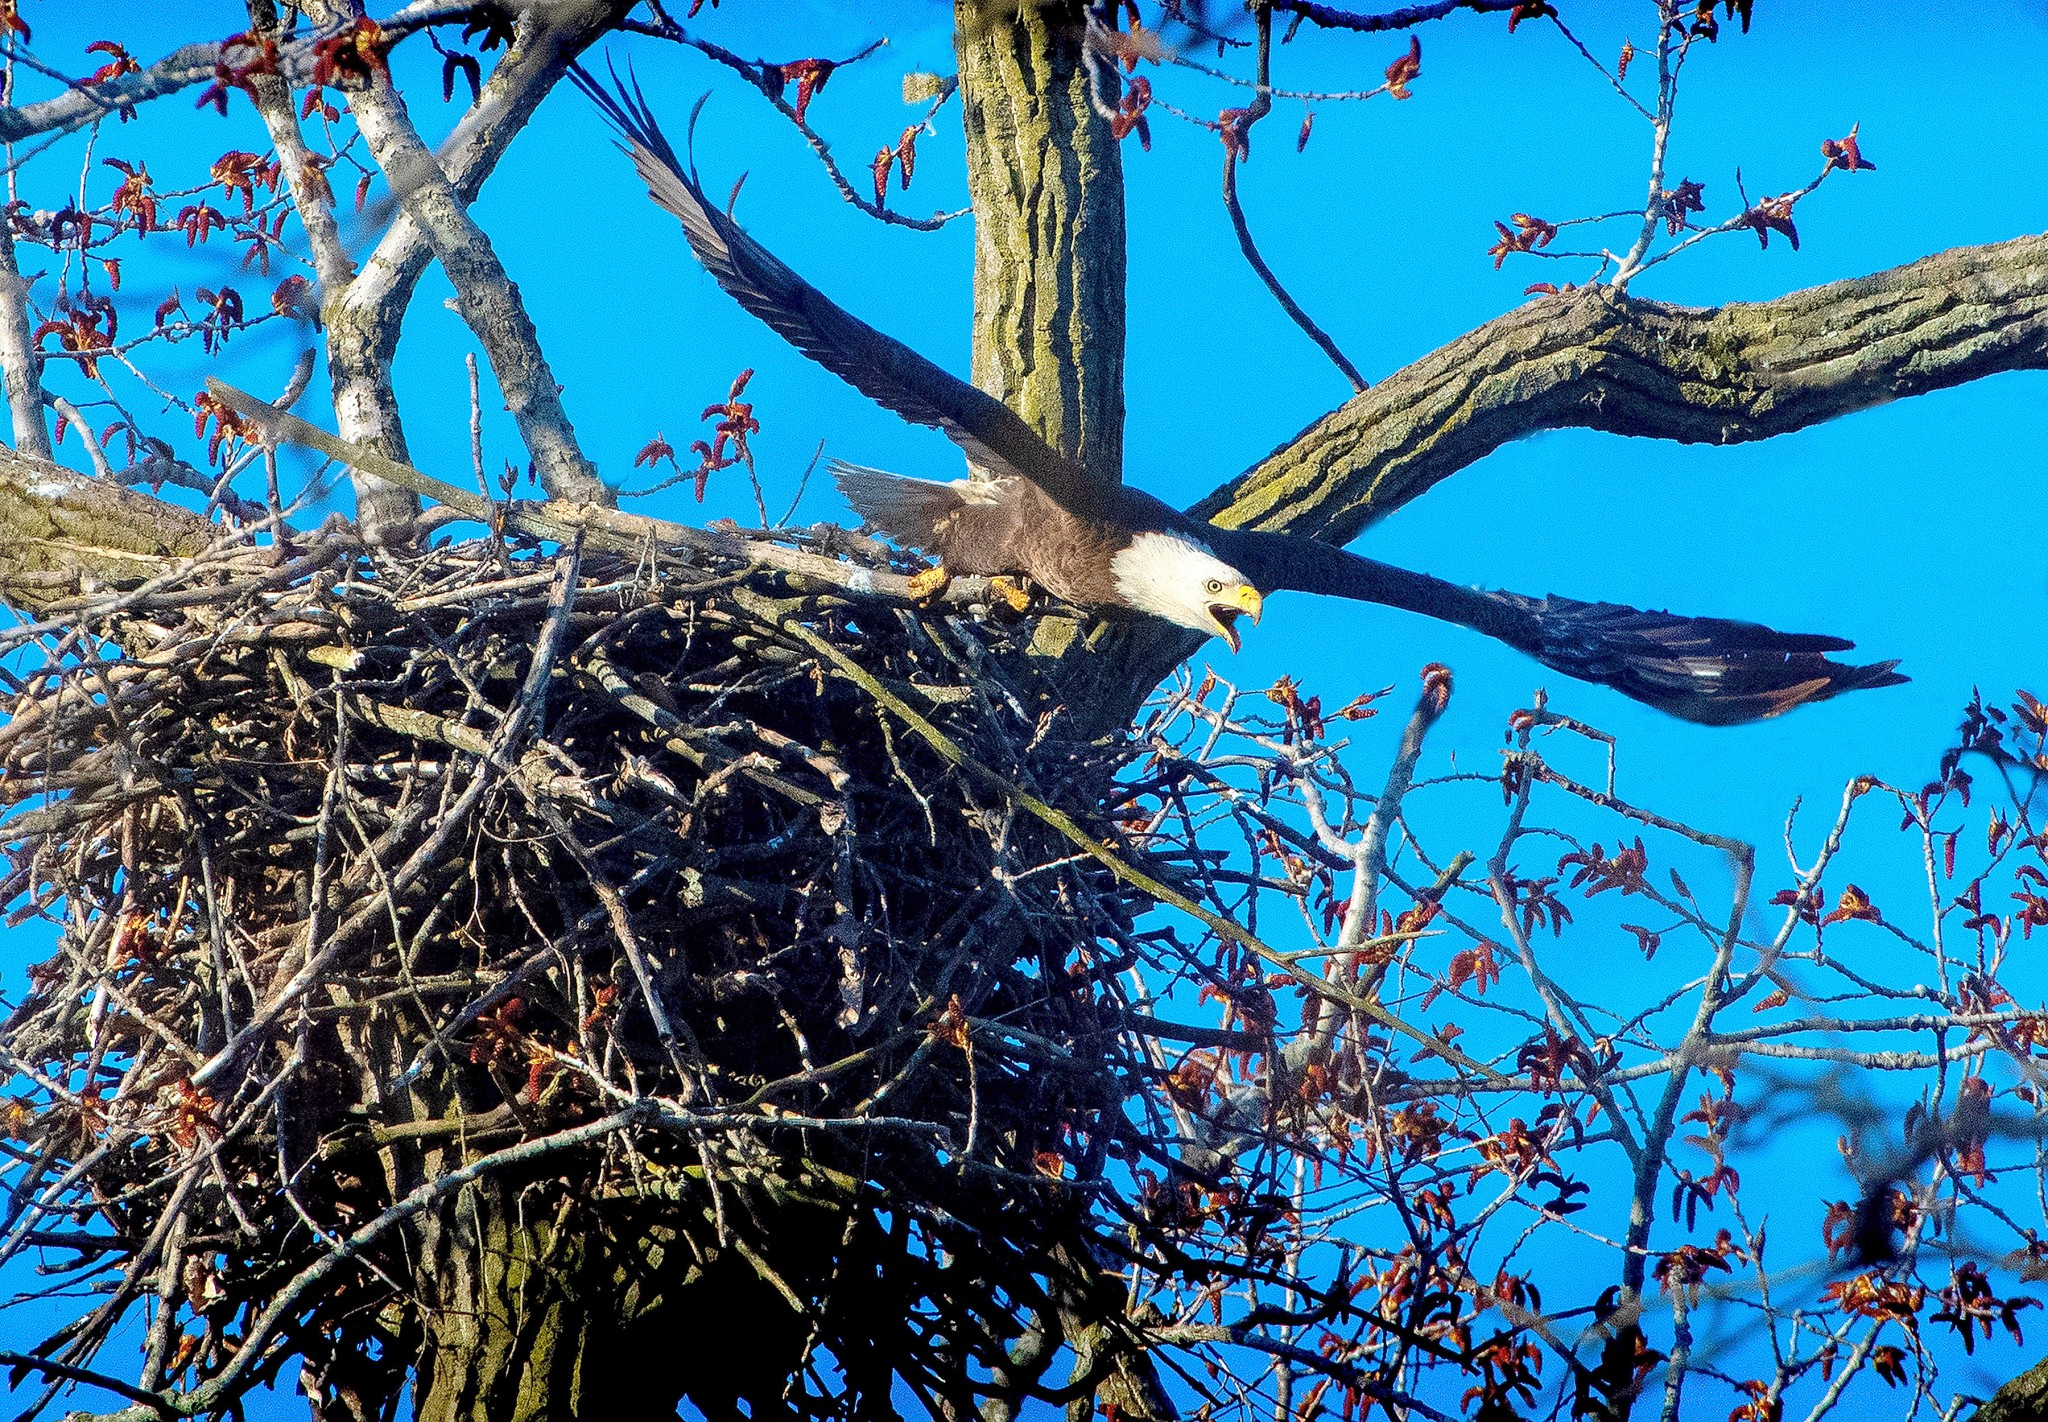 Not all the favorite birds of spring are small songbirds. Our area is home to Ohio's largest population of bald eagles, their huge nests unmistakable all along the lakeshore. A recent survey logged locations of 90 nests just in Ottawa County. (Photo by Art Weber)